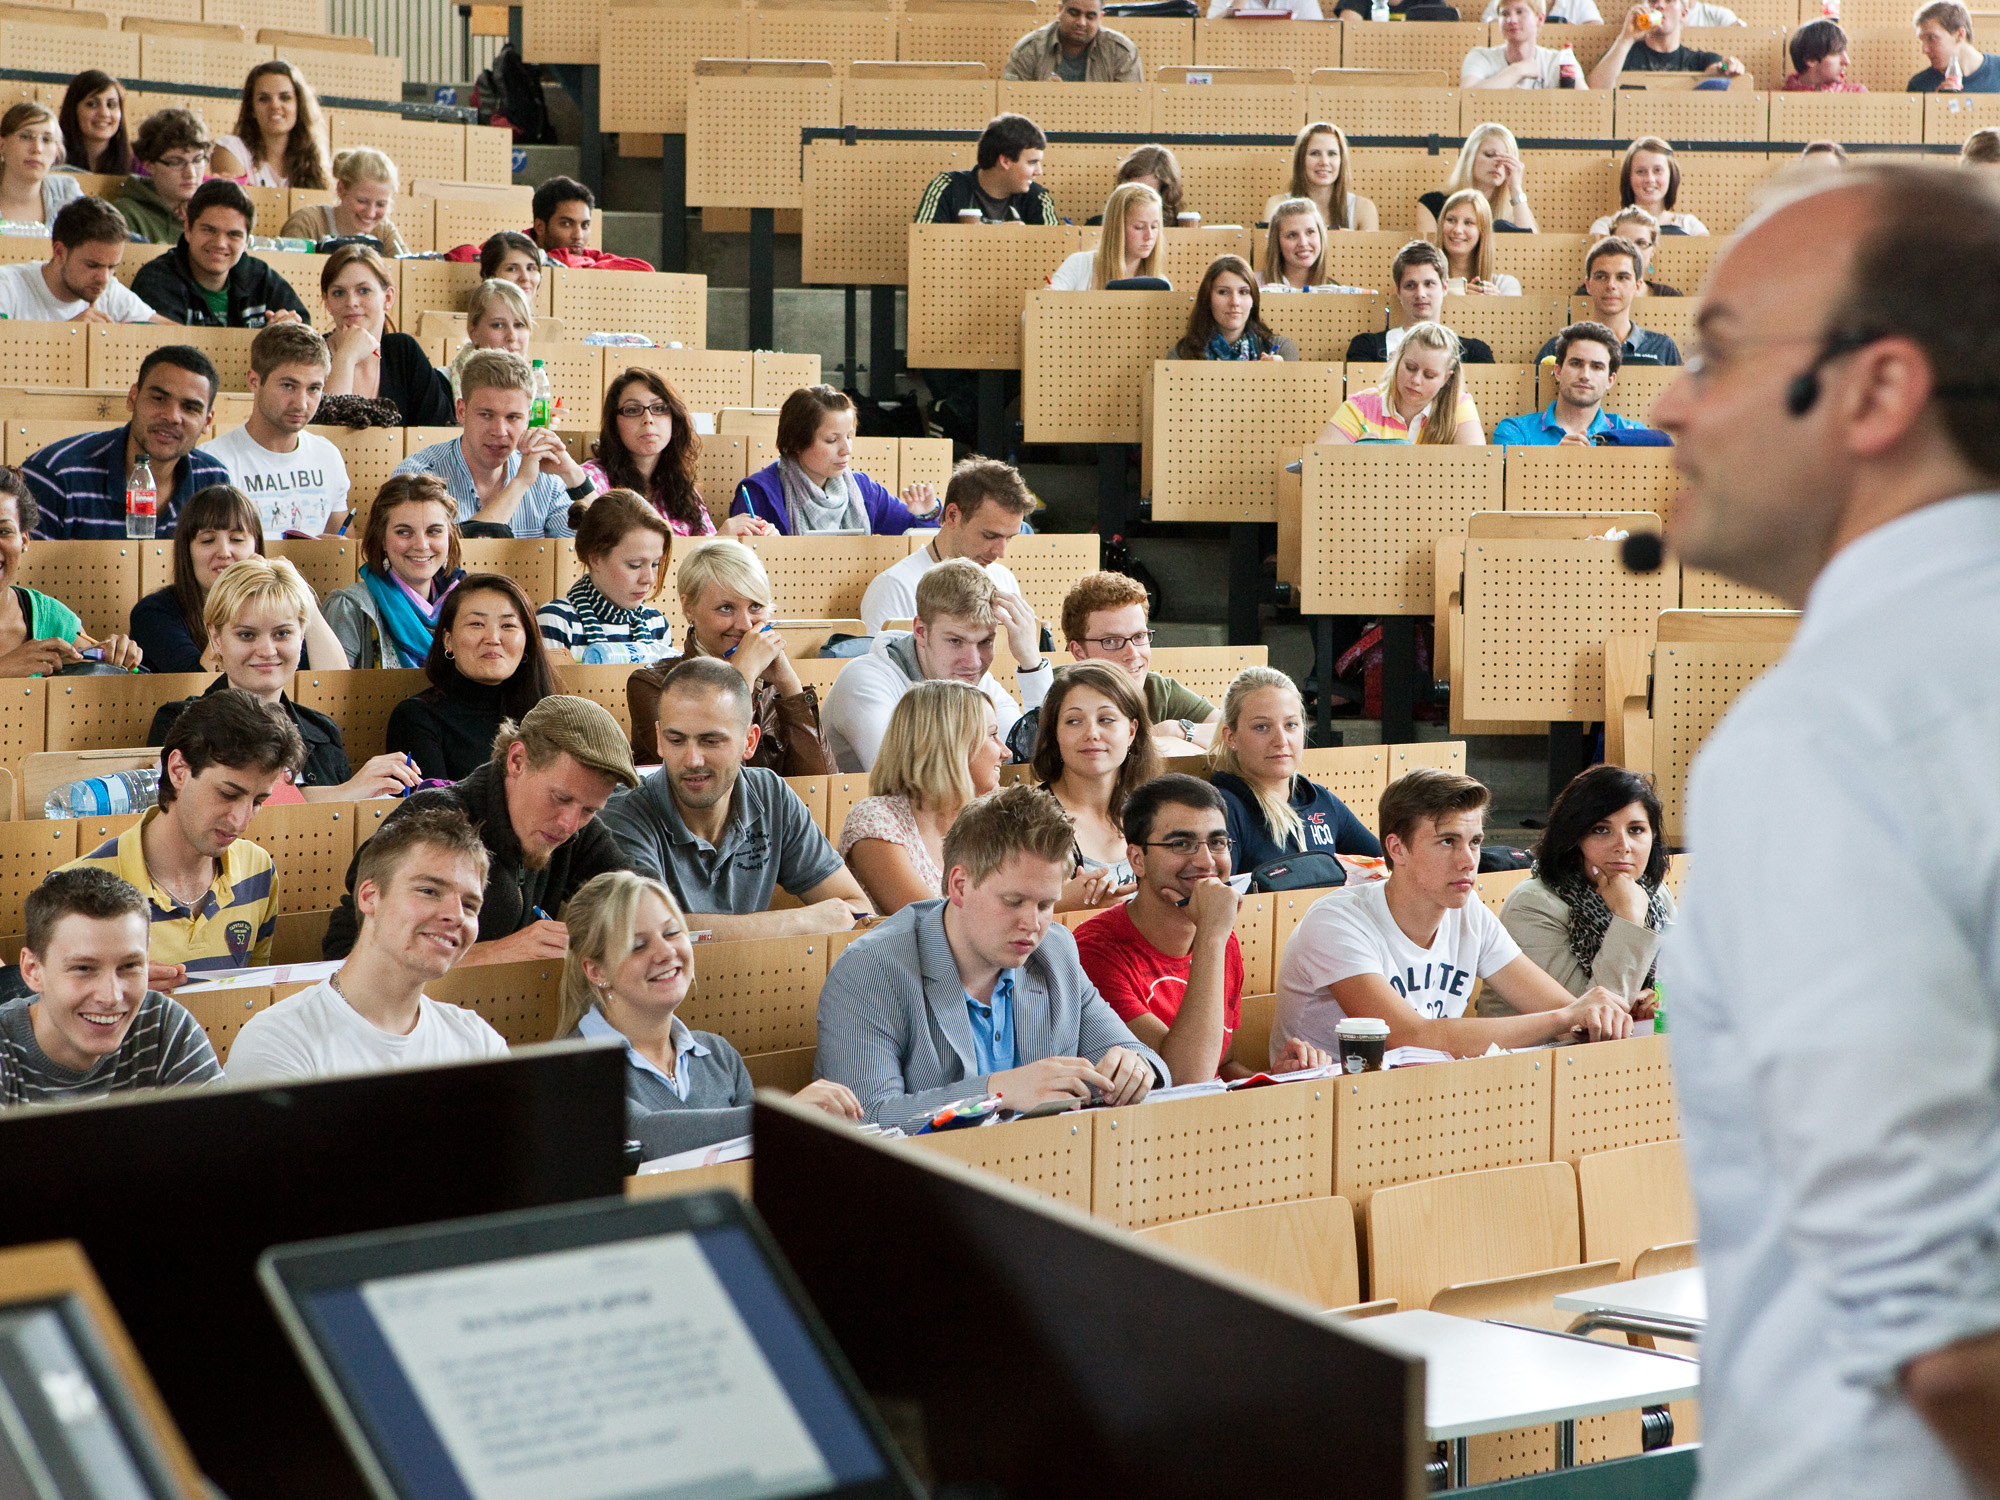 A lecturer in the full lecture hall.